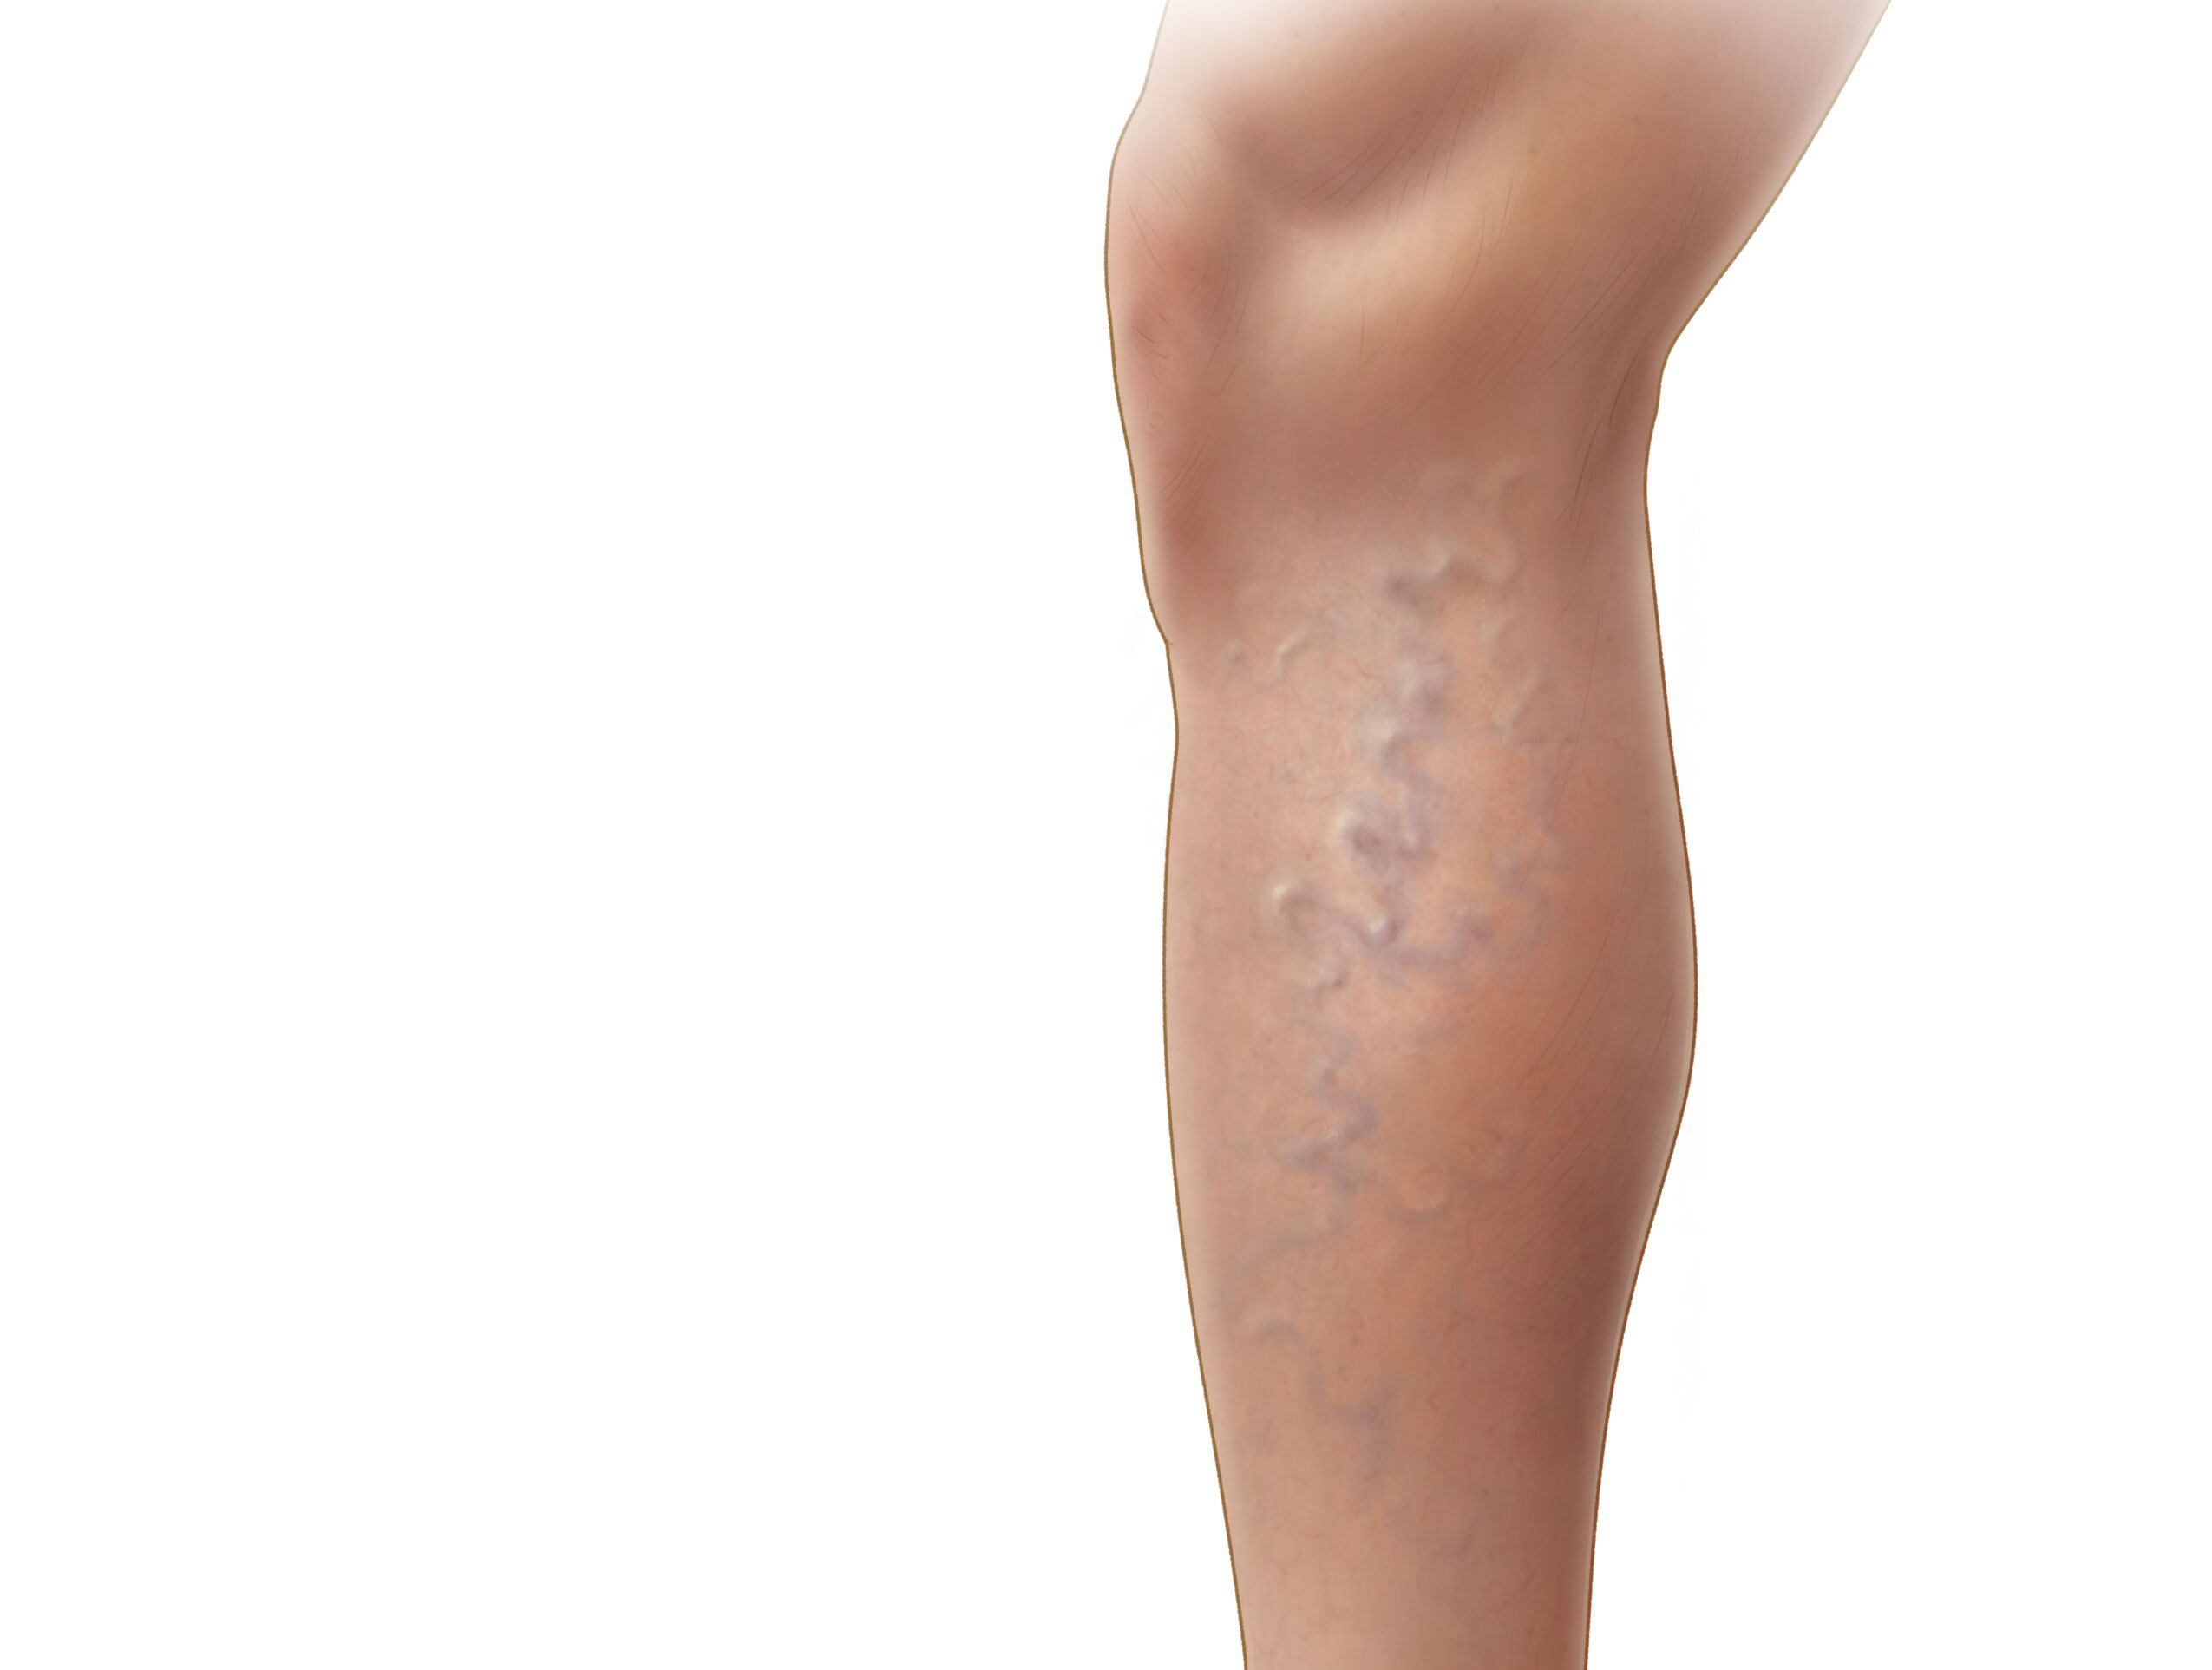 Medical illustration of a leg with varicose veins